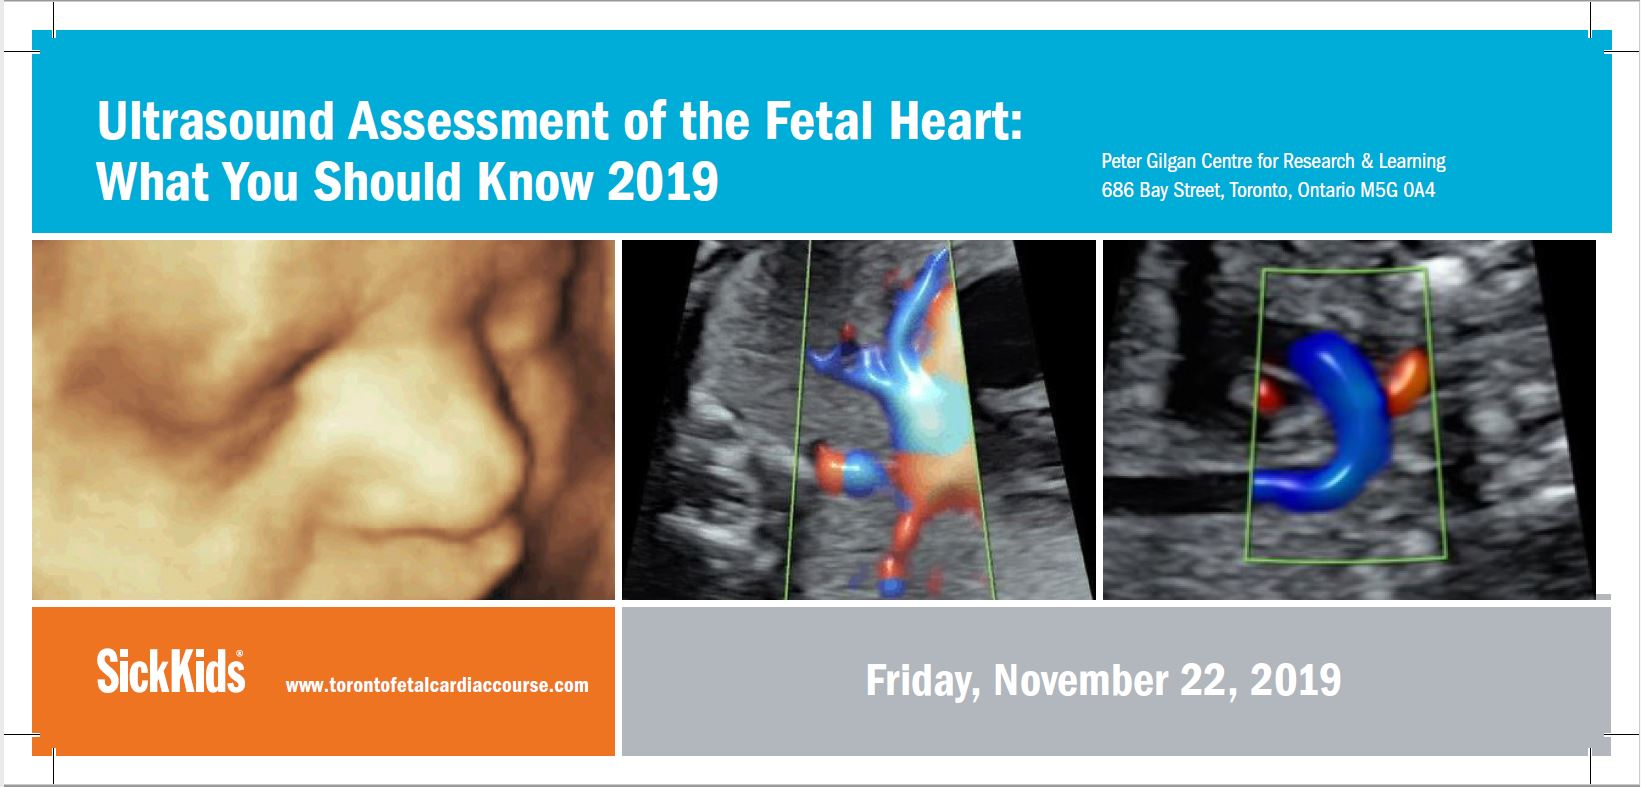 Ultrasound Assessment of the Fetal Heart: What You Should Know - Toronto 2019